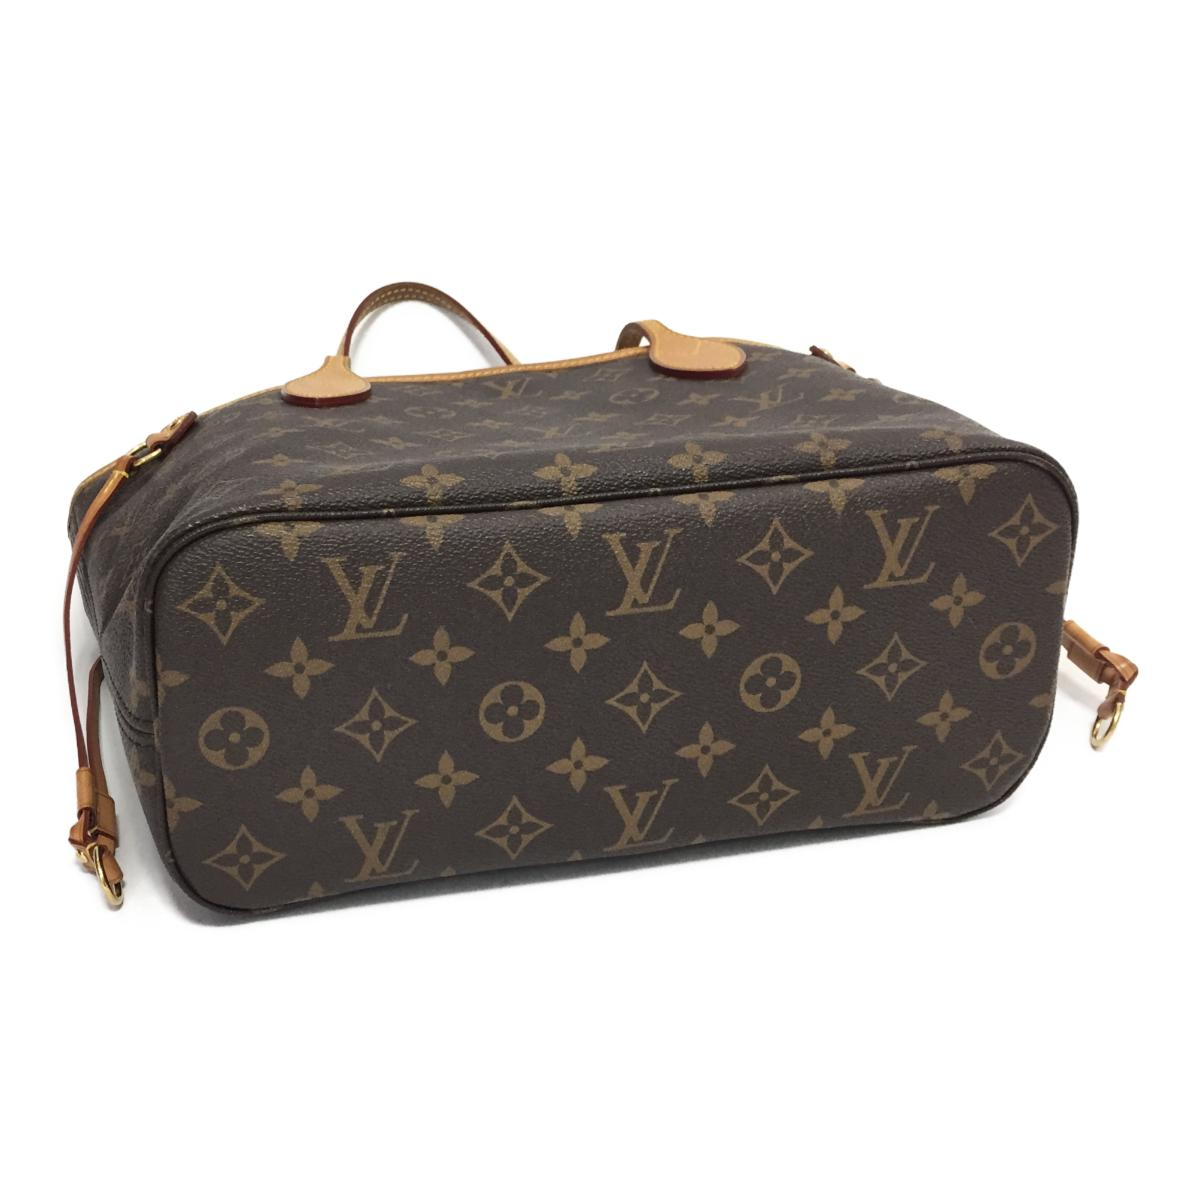 304084404518 (Free shipping) Auth LOUIS VUITTON Neverfull PM tote bag M40155 Monogram  Used Vintage